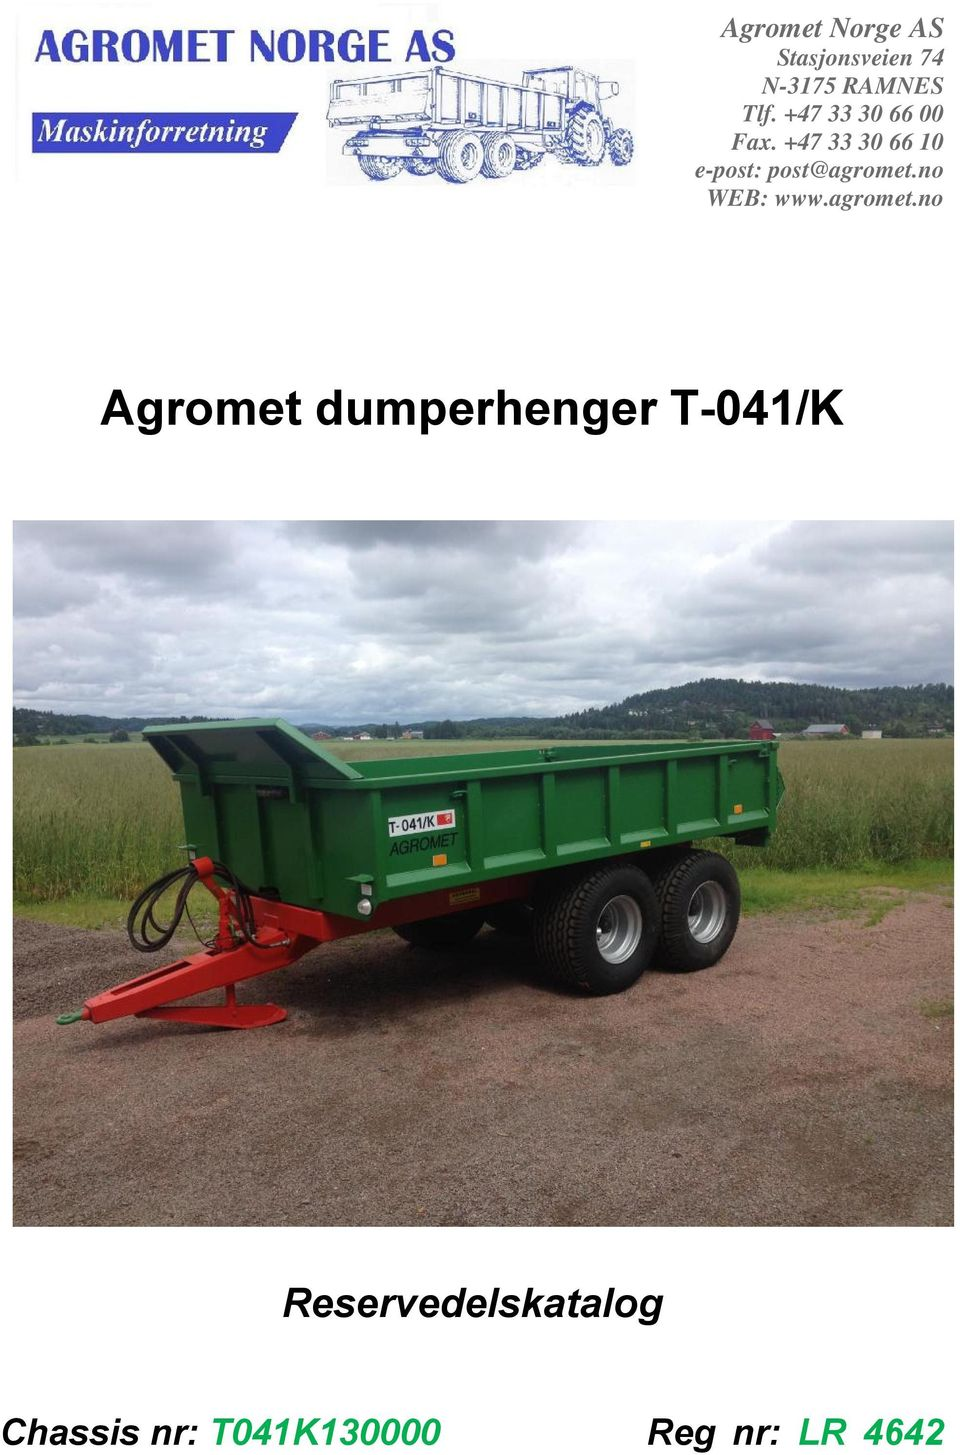 +47 33 30 66 10 e-post: post@agromet.no WEB: www.